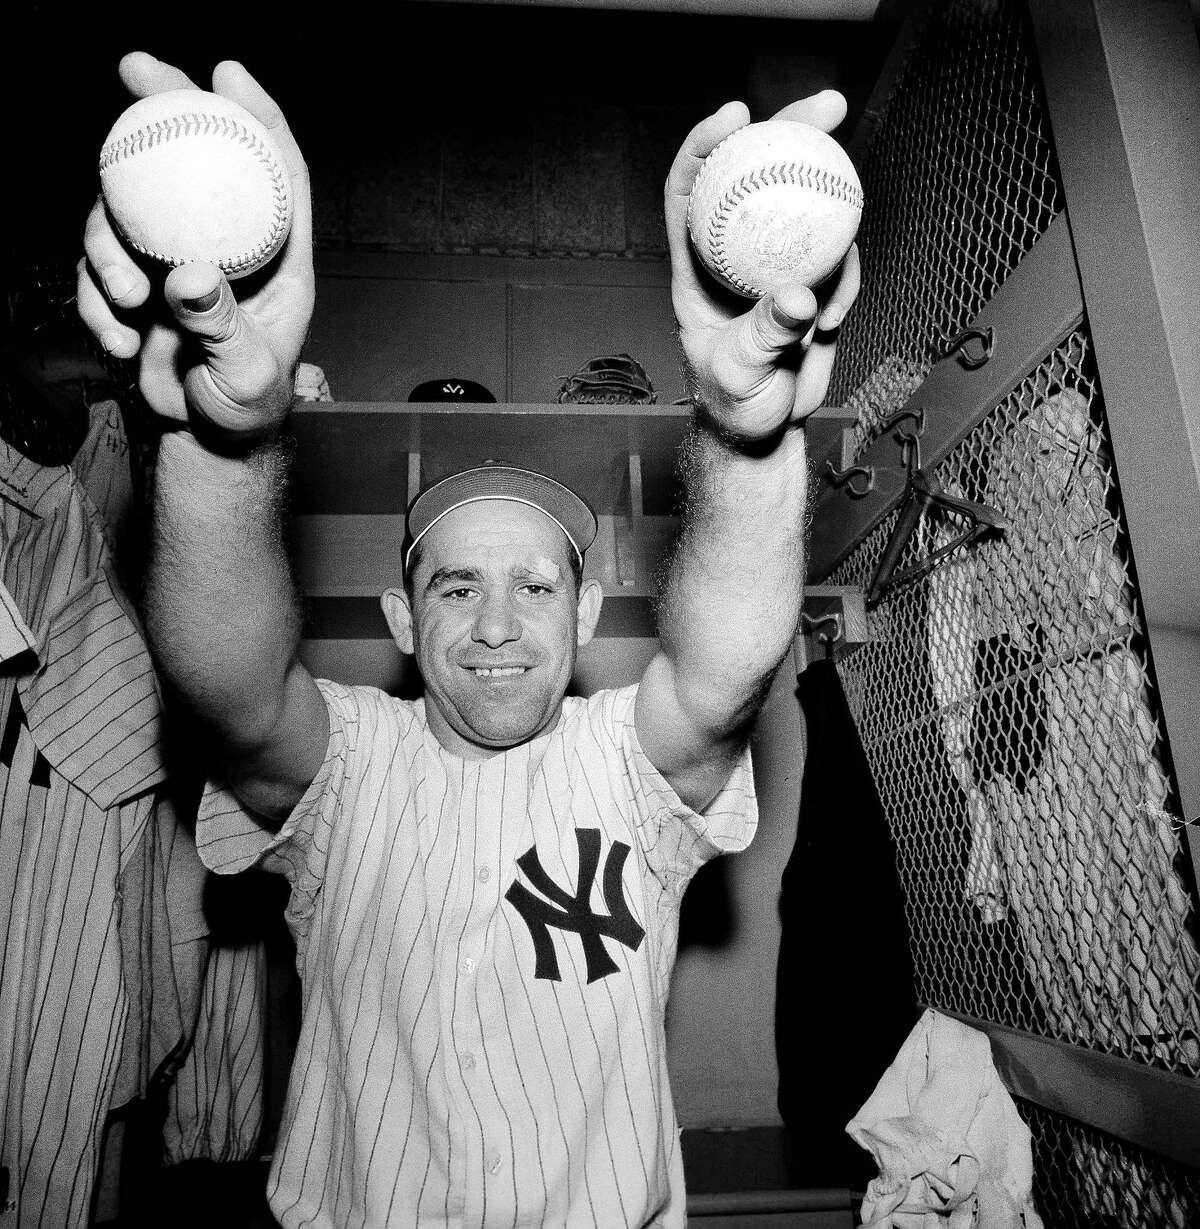 This Aug. 20, 1959 file photo shows New York Yankee Yogi Berra as he talked about the two home runs he hit in the 7-1 victory over Cleveland in a game in New York. The great Yogi Berra turns 90 on May 12, 2015. (AP Photo/Ray Howard, File)